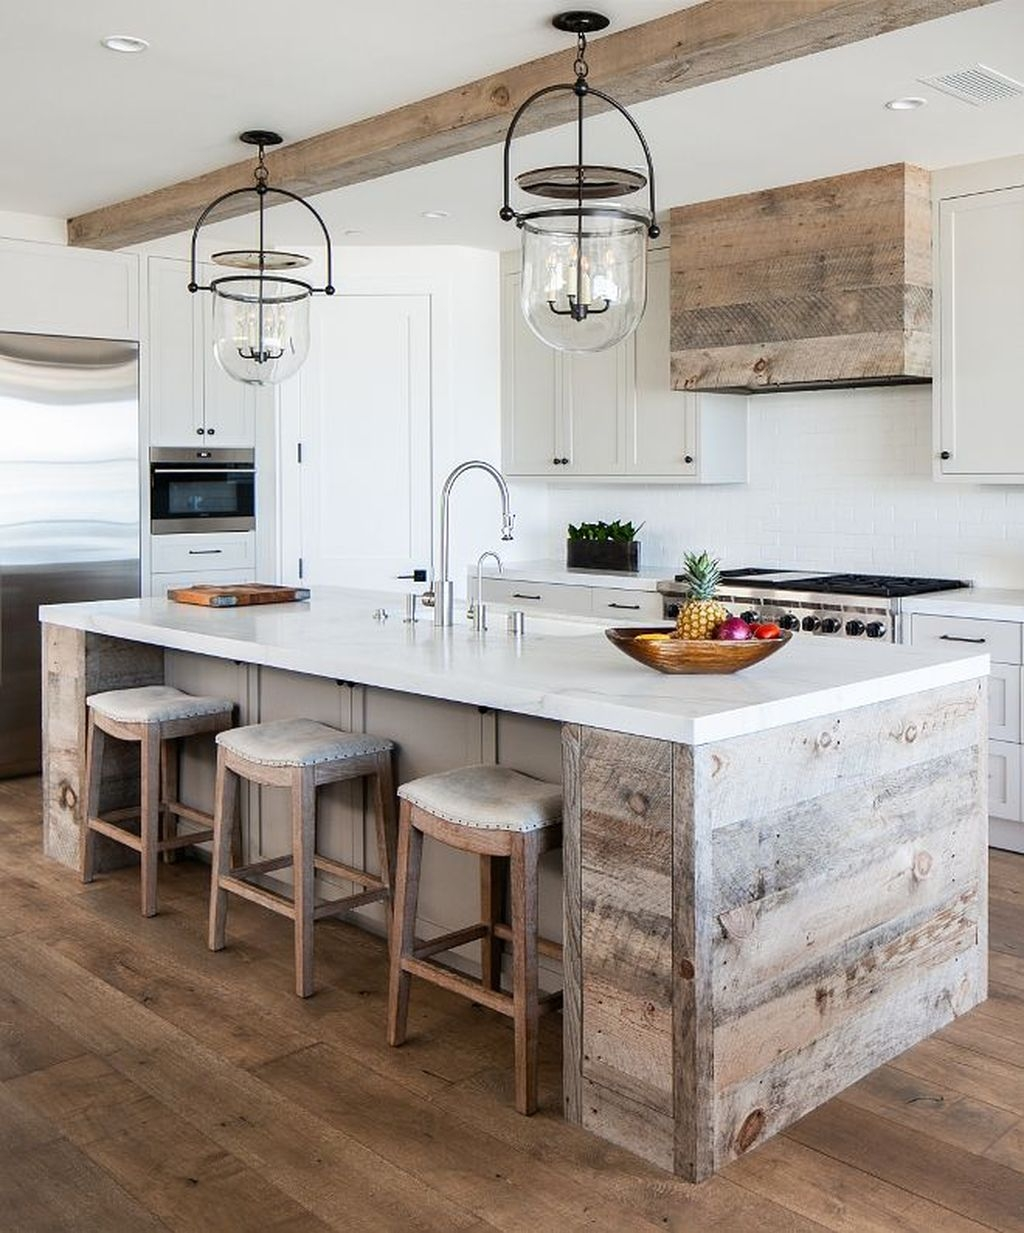 Awesome Rustic Kitchen Island Design Ideas 12